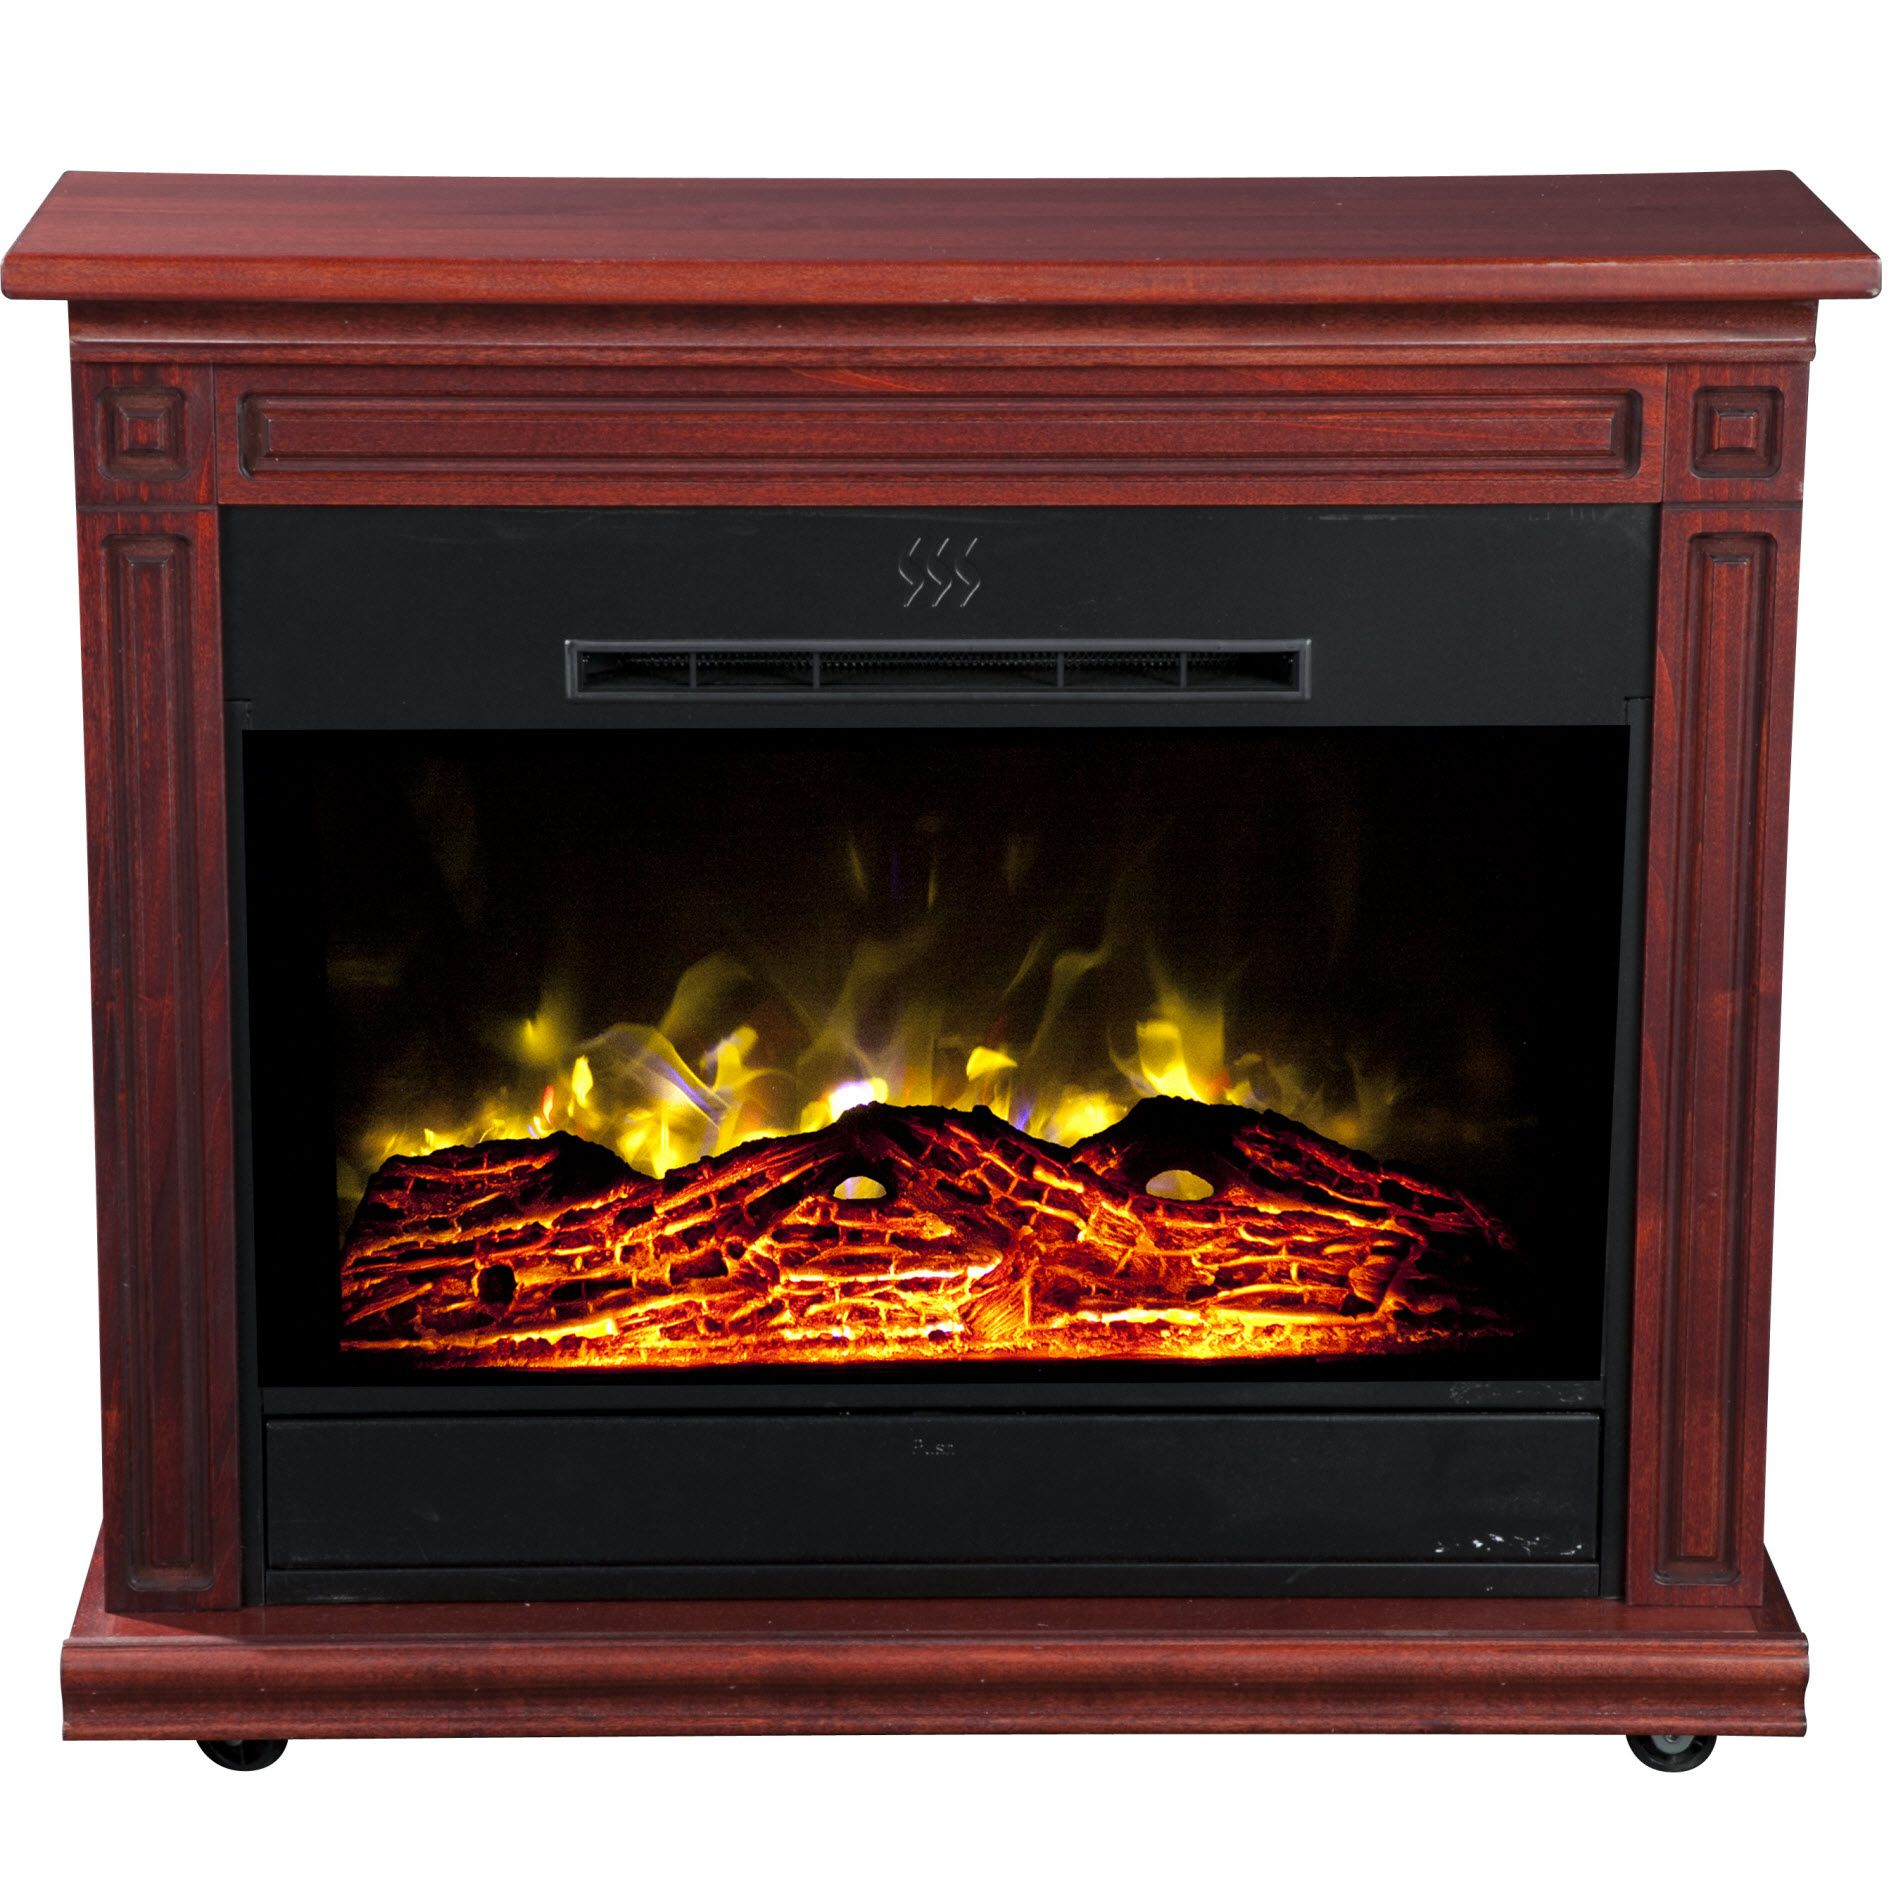 Shop for a Heat Surge Roll-n-Glow Electric Fireplace  - Cherry (30000525) at Sears Outlet today! We offer low prices and great service.